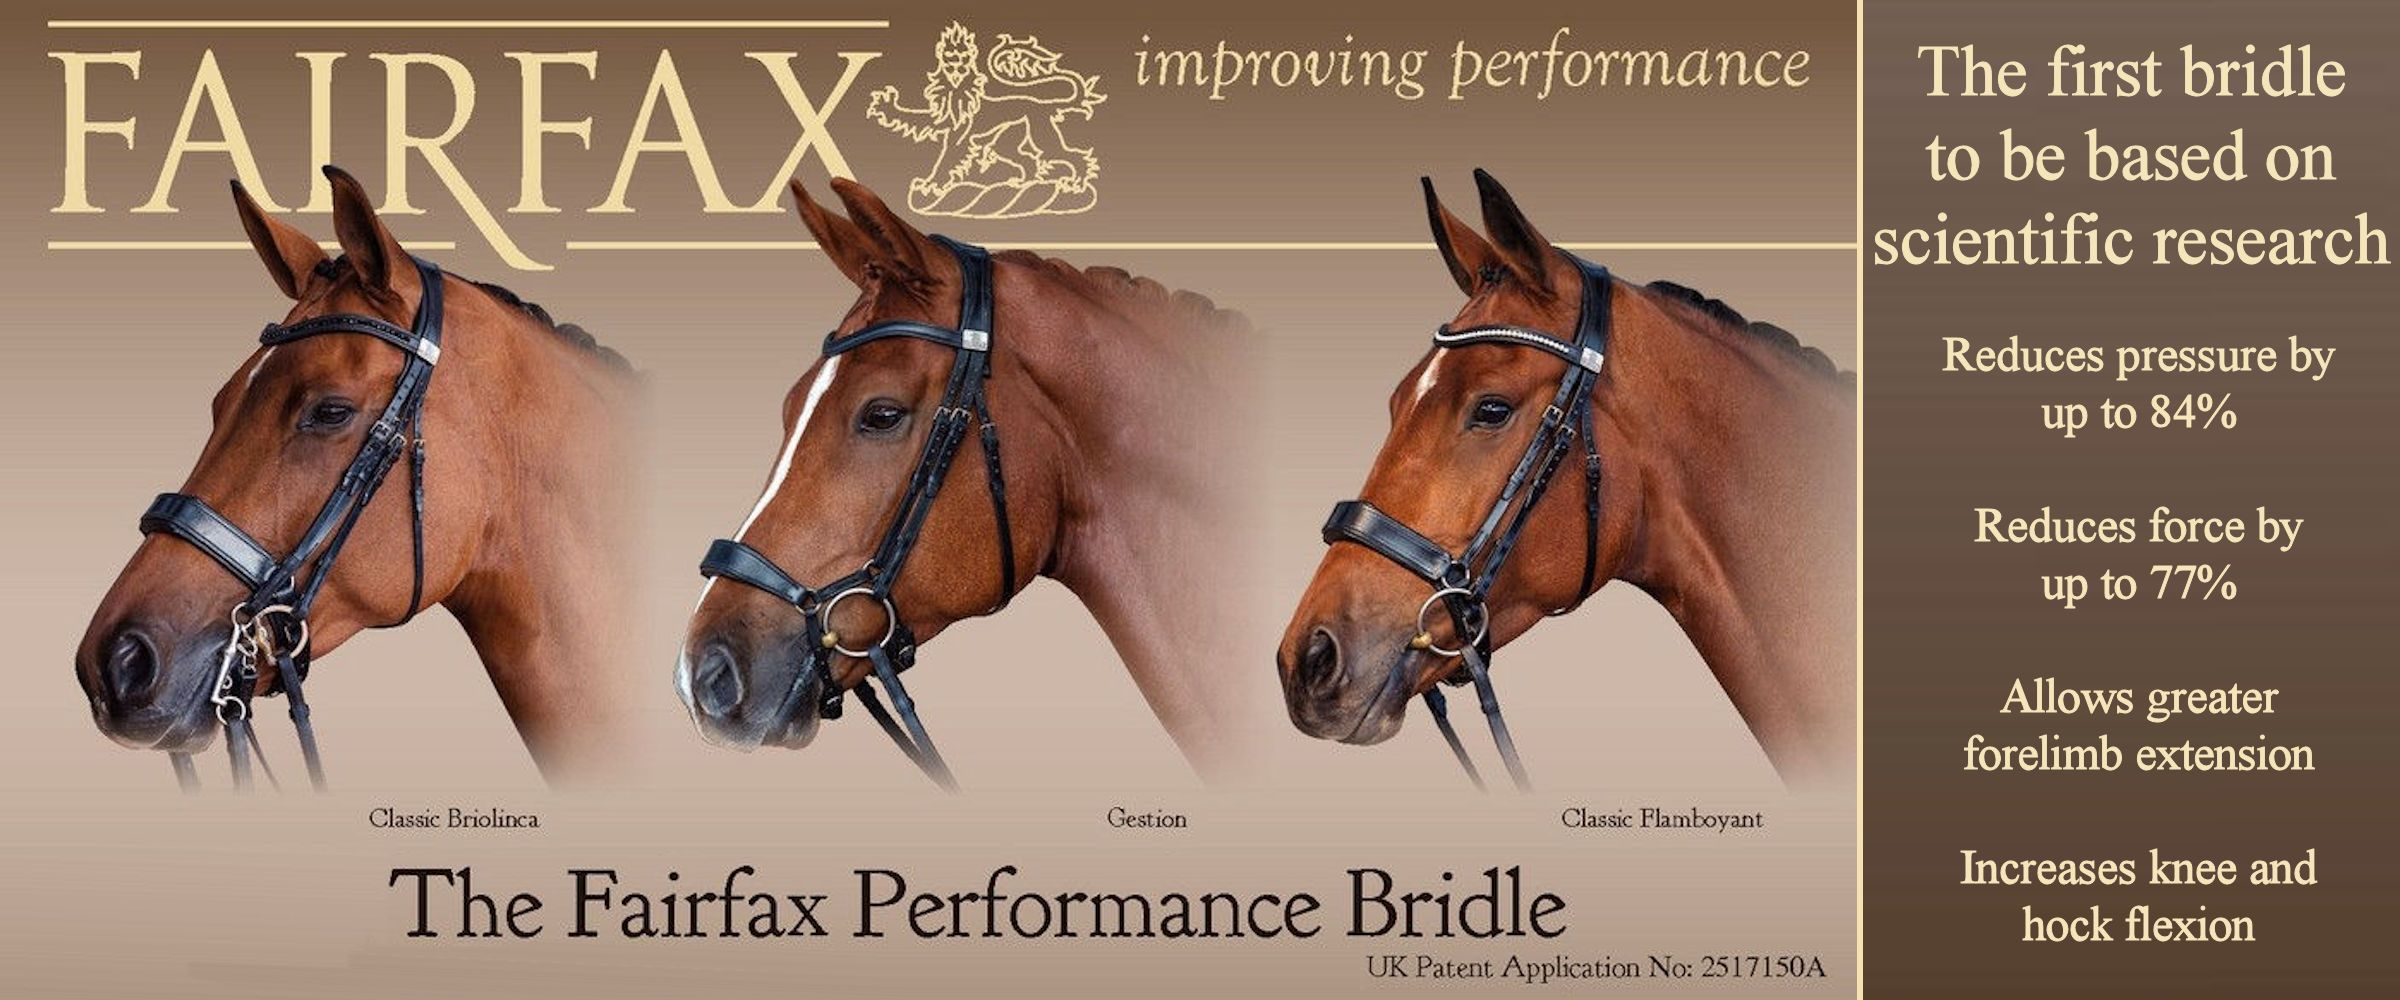 fairfax bridles